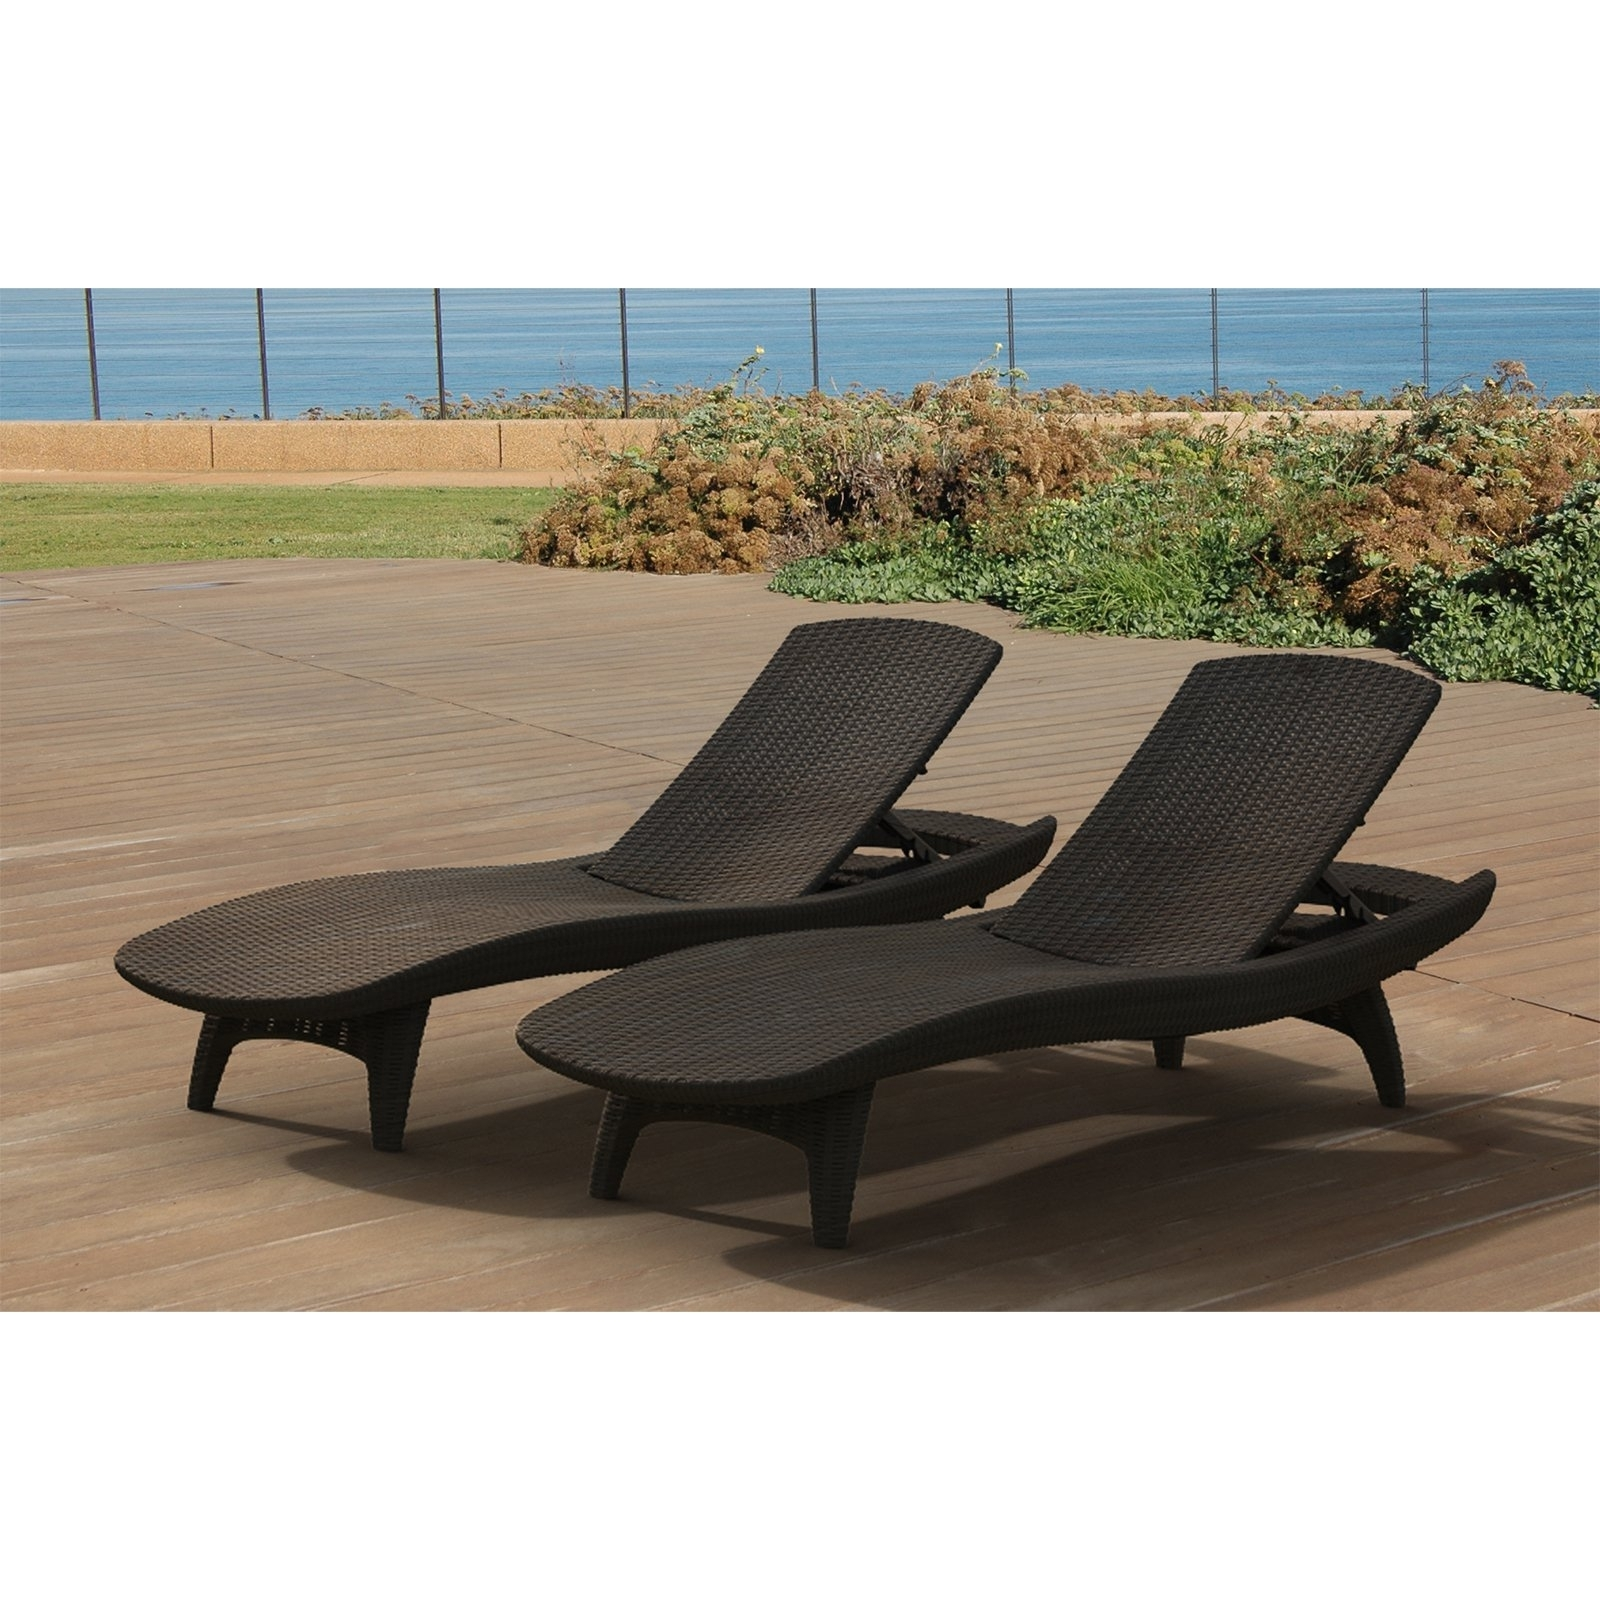 Patio Furniture Outlet Inexpensive Outdoor Furniture Beach Lounge Inside Most Popular Outdoor Pool Chaise Lounge Chairs (View 12 of 15)